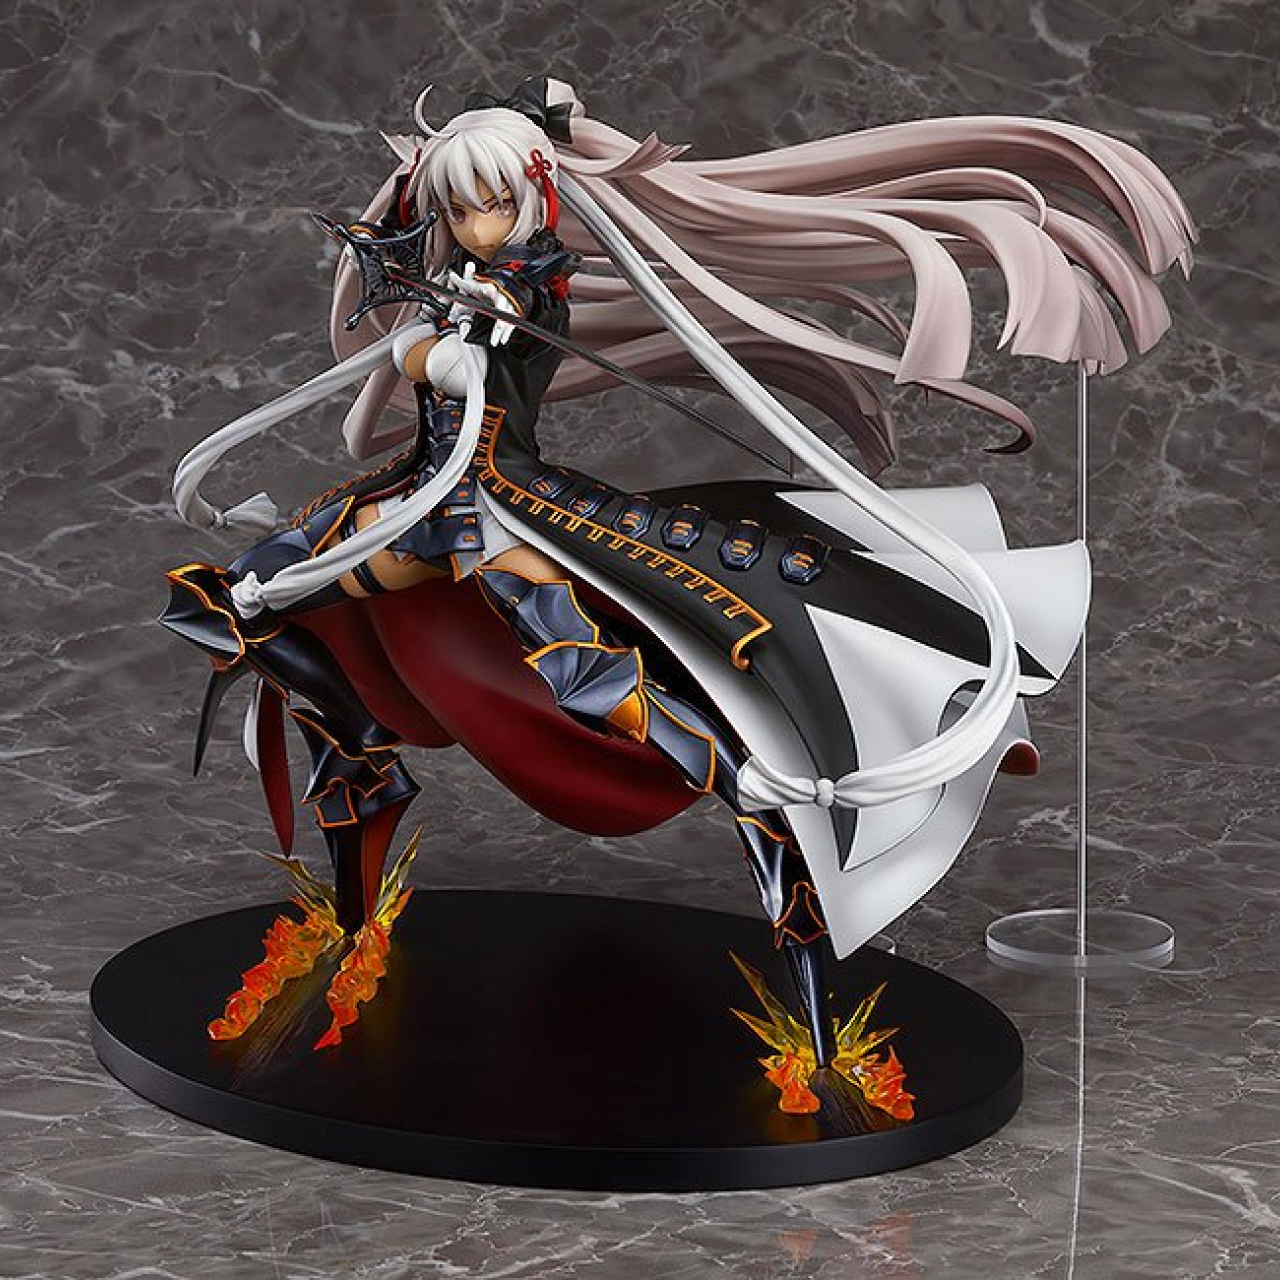 Fate/Grand Order PVC Statue 1/7 Alter Ego/Okita Souji (Alter) Absolute Blade: Endless Three Stage